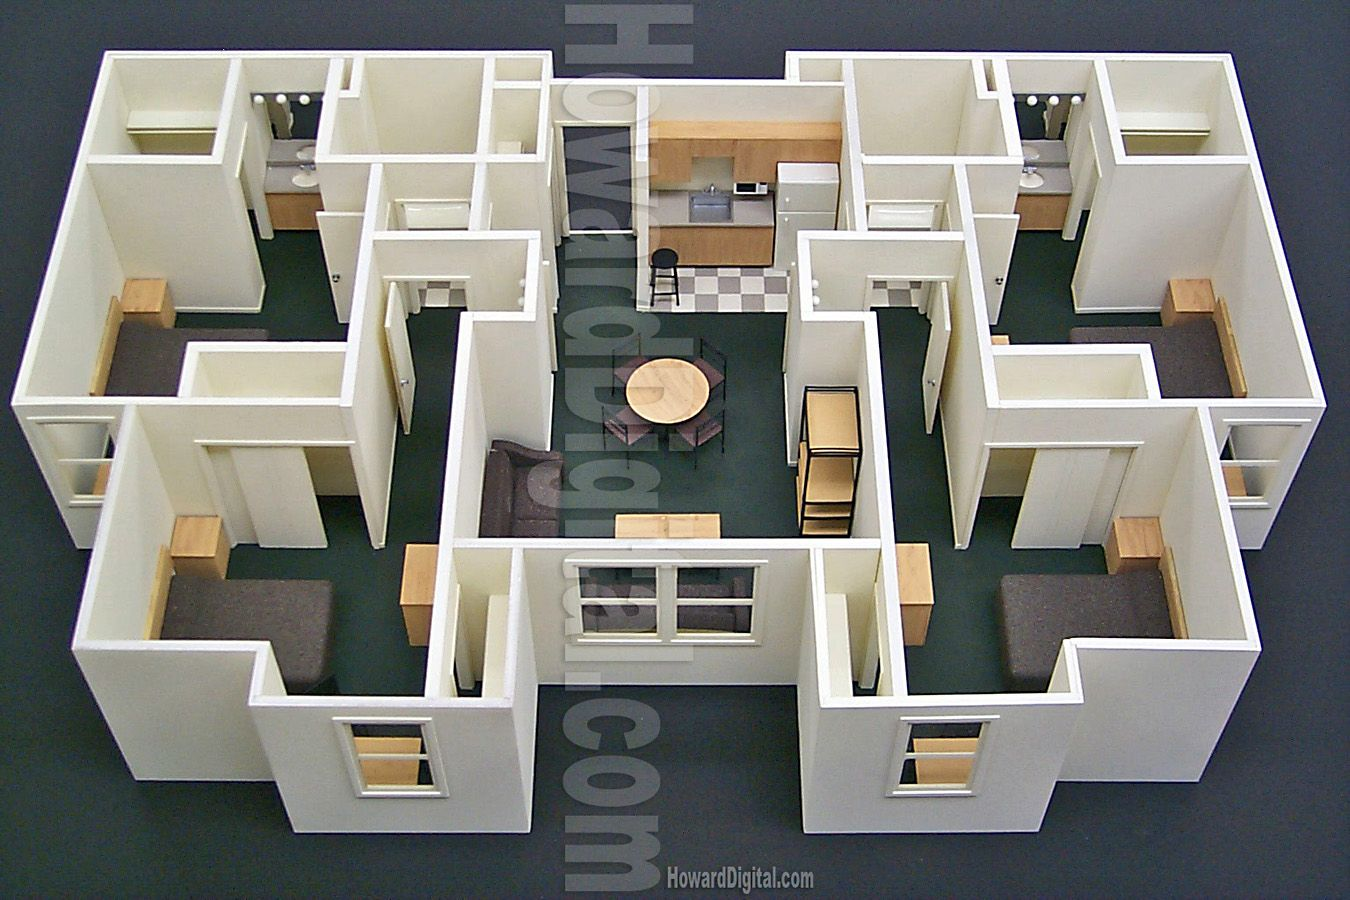 Floor lay out foam board model building modeling for New home models and plans